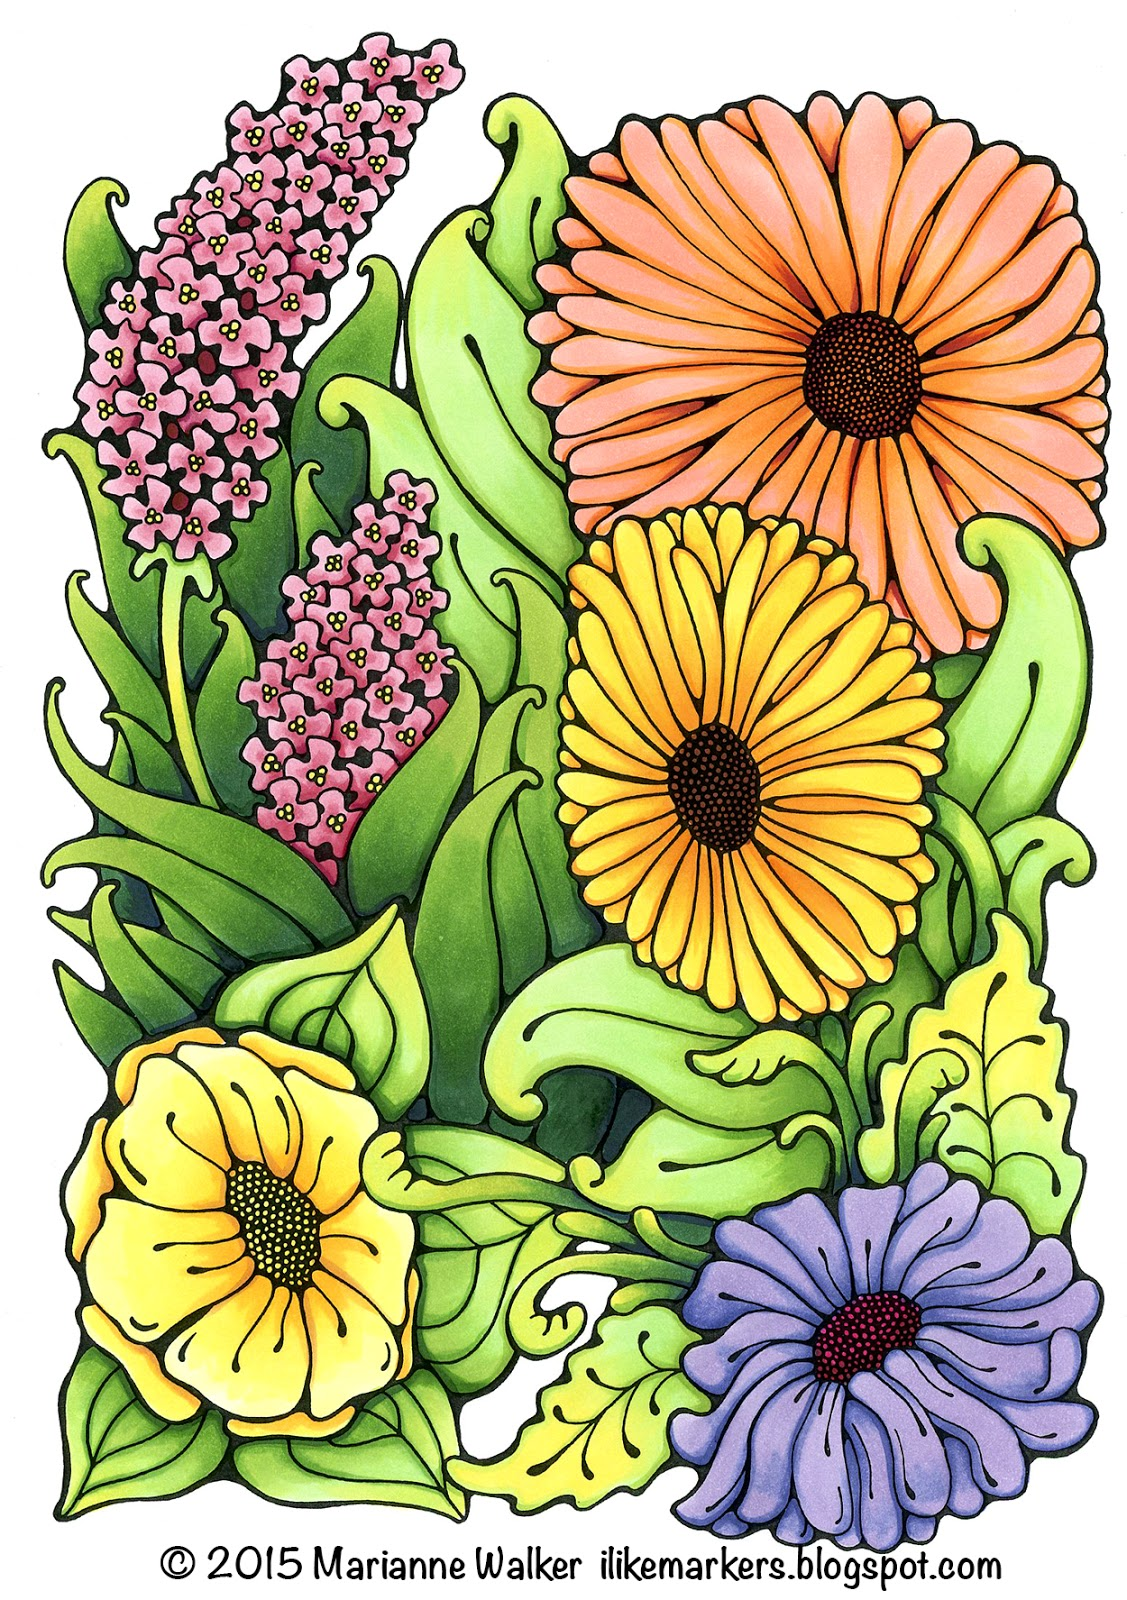 I Like Markers: Coloring leaves with extra depth